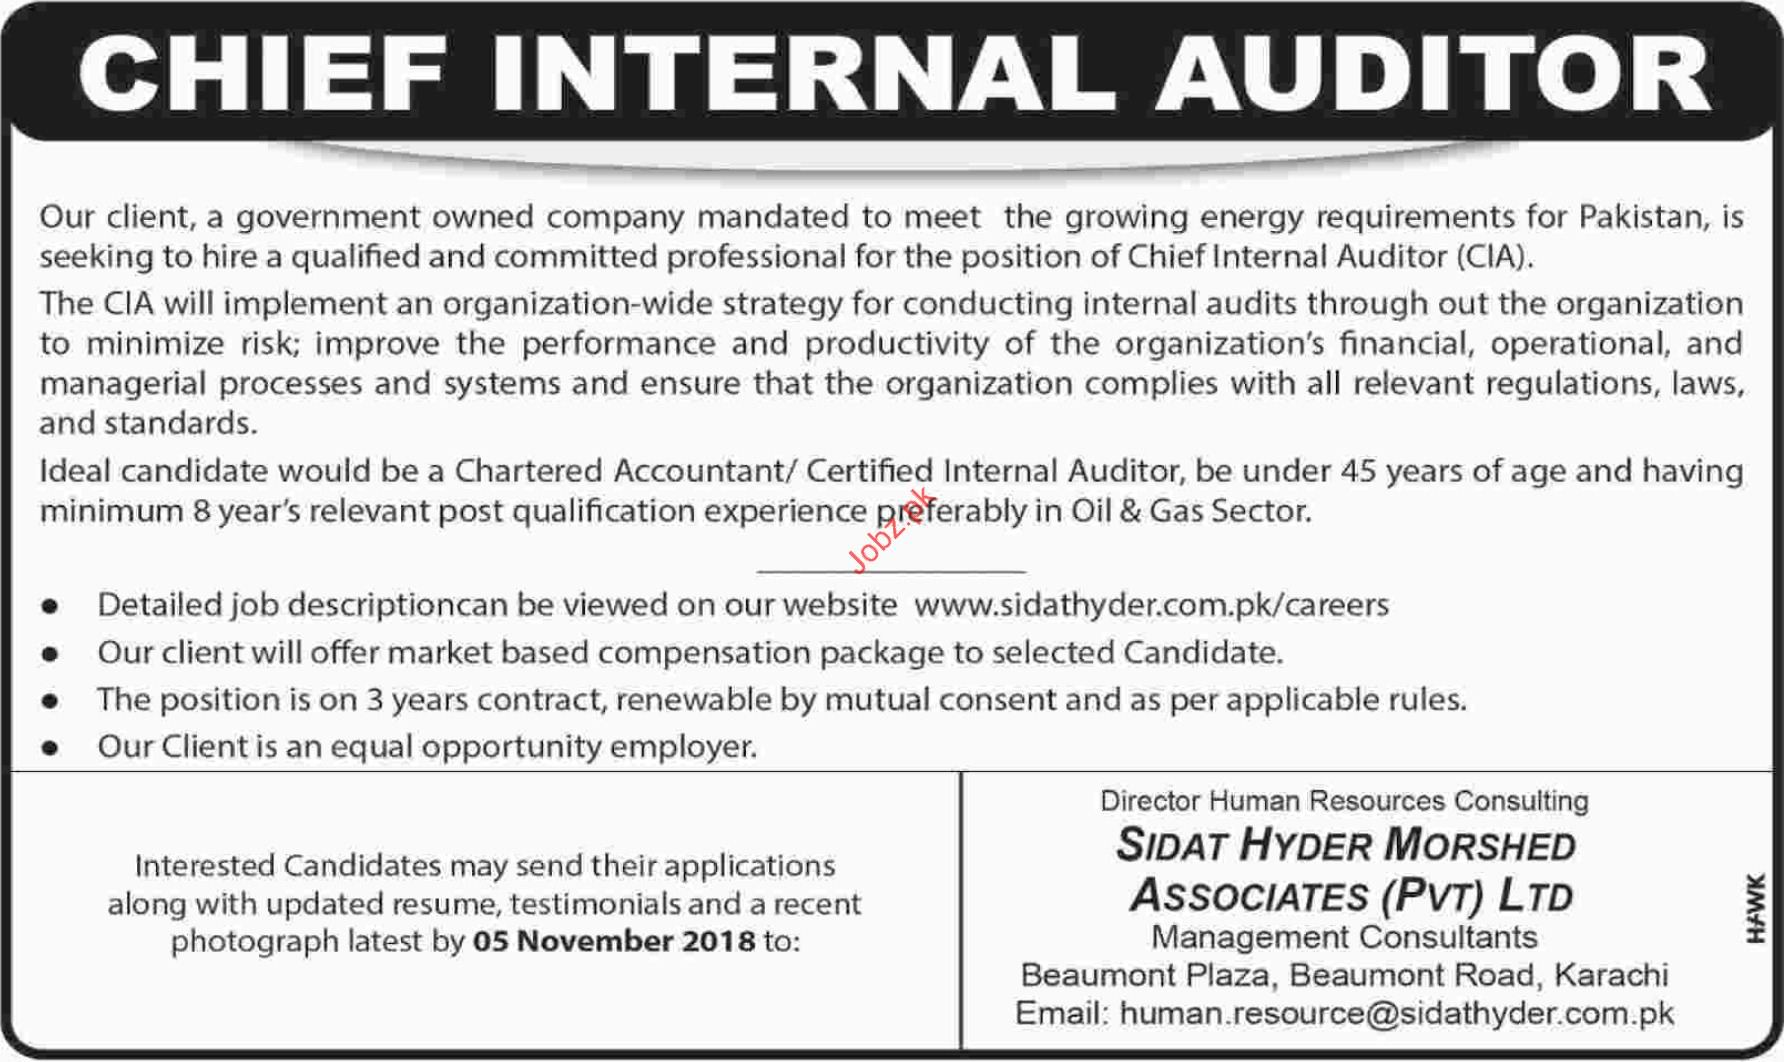 Sidat Hyder Morshed Associates Internal Auditor Jobs 2018